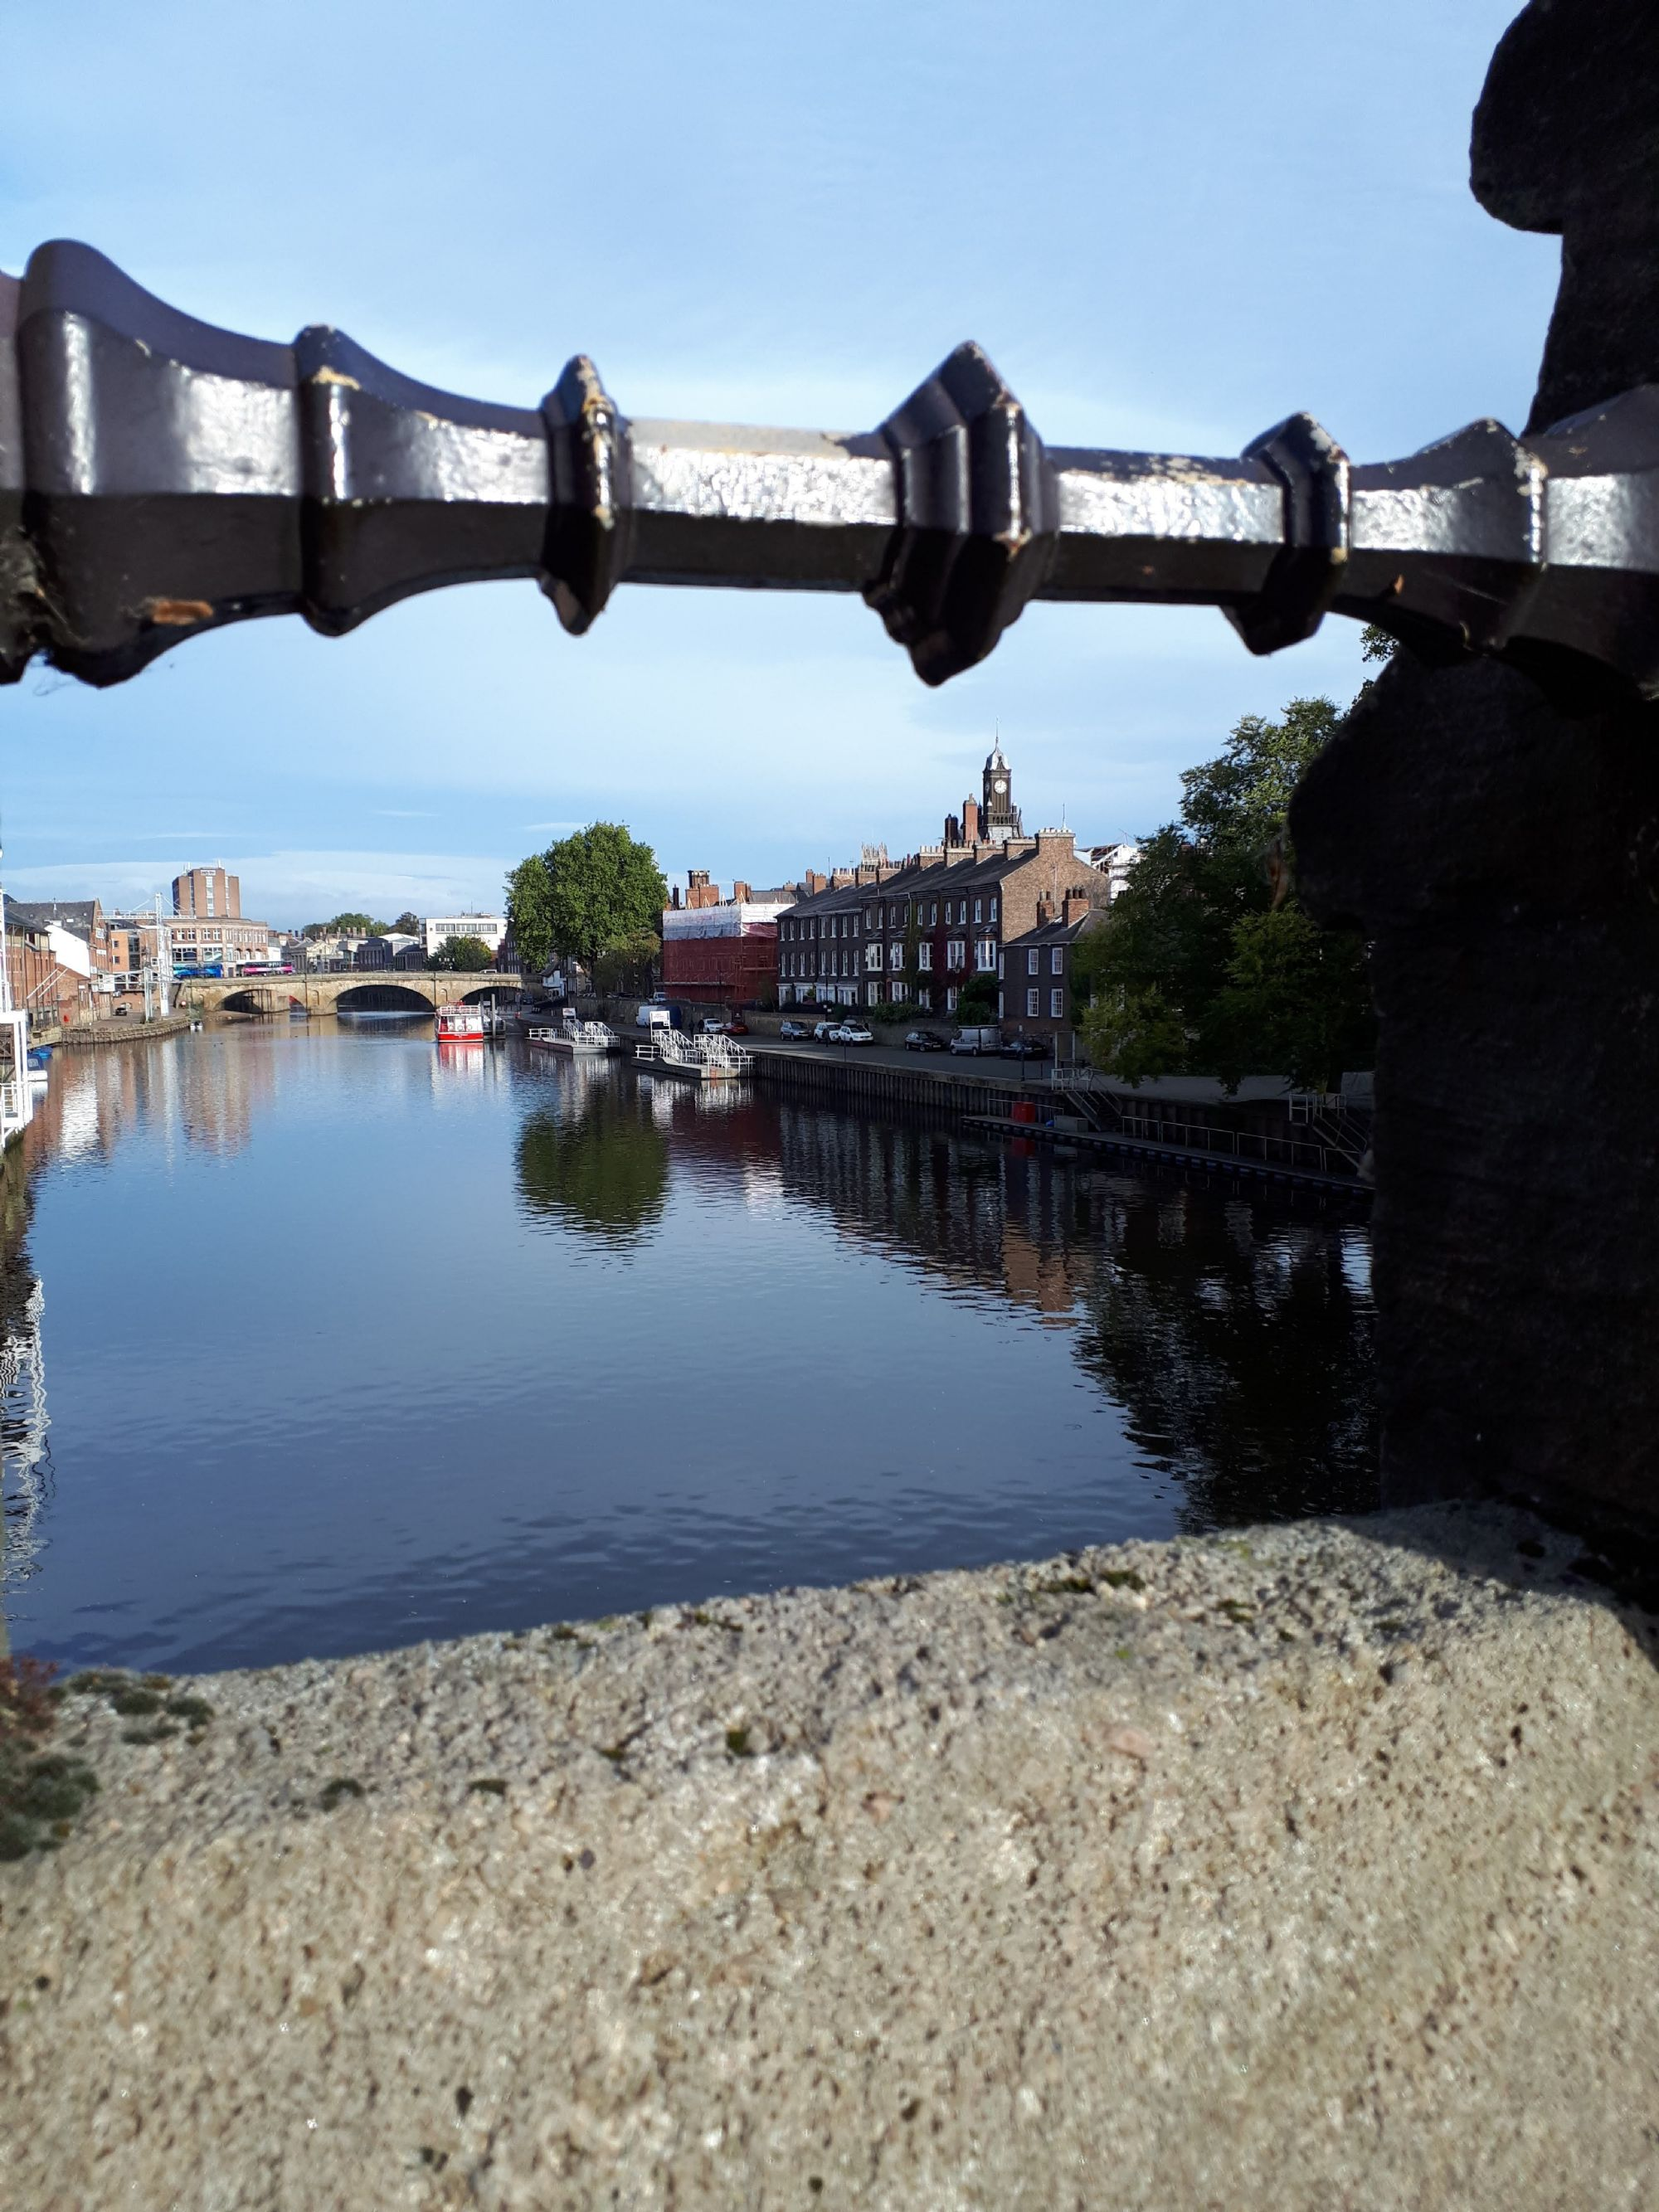 View from a bridge in York